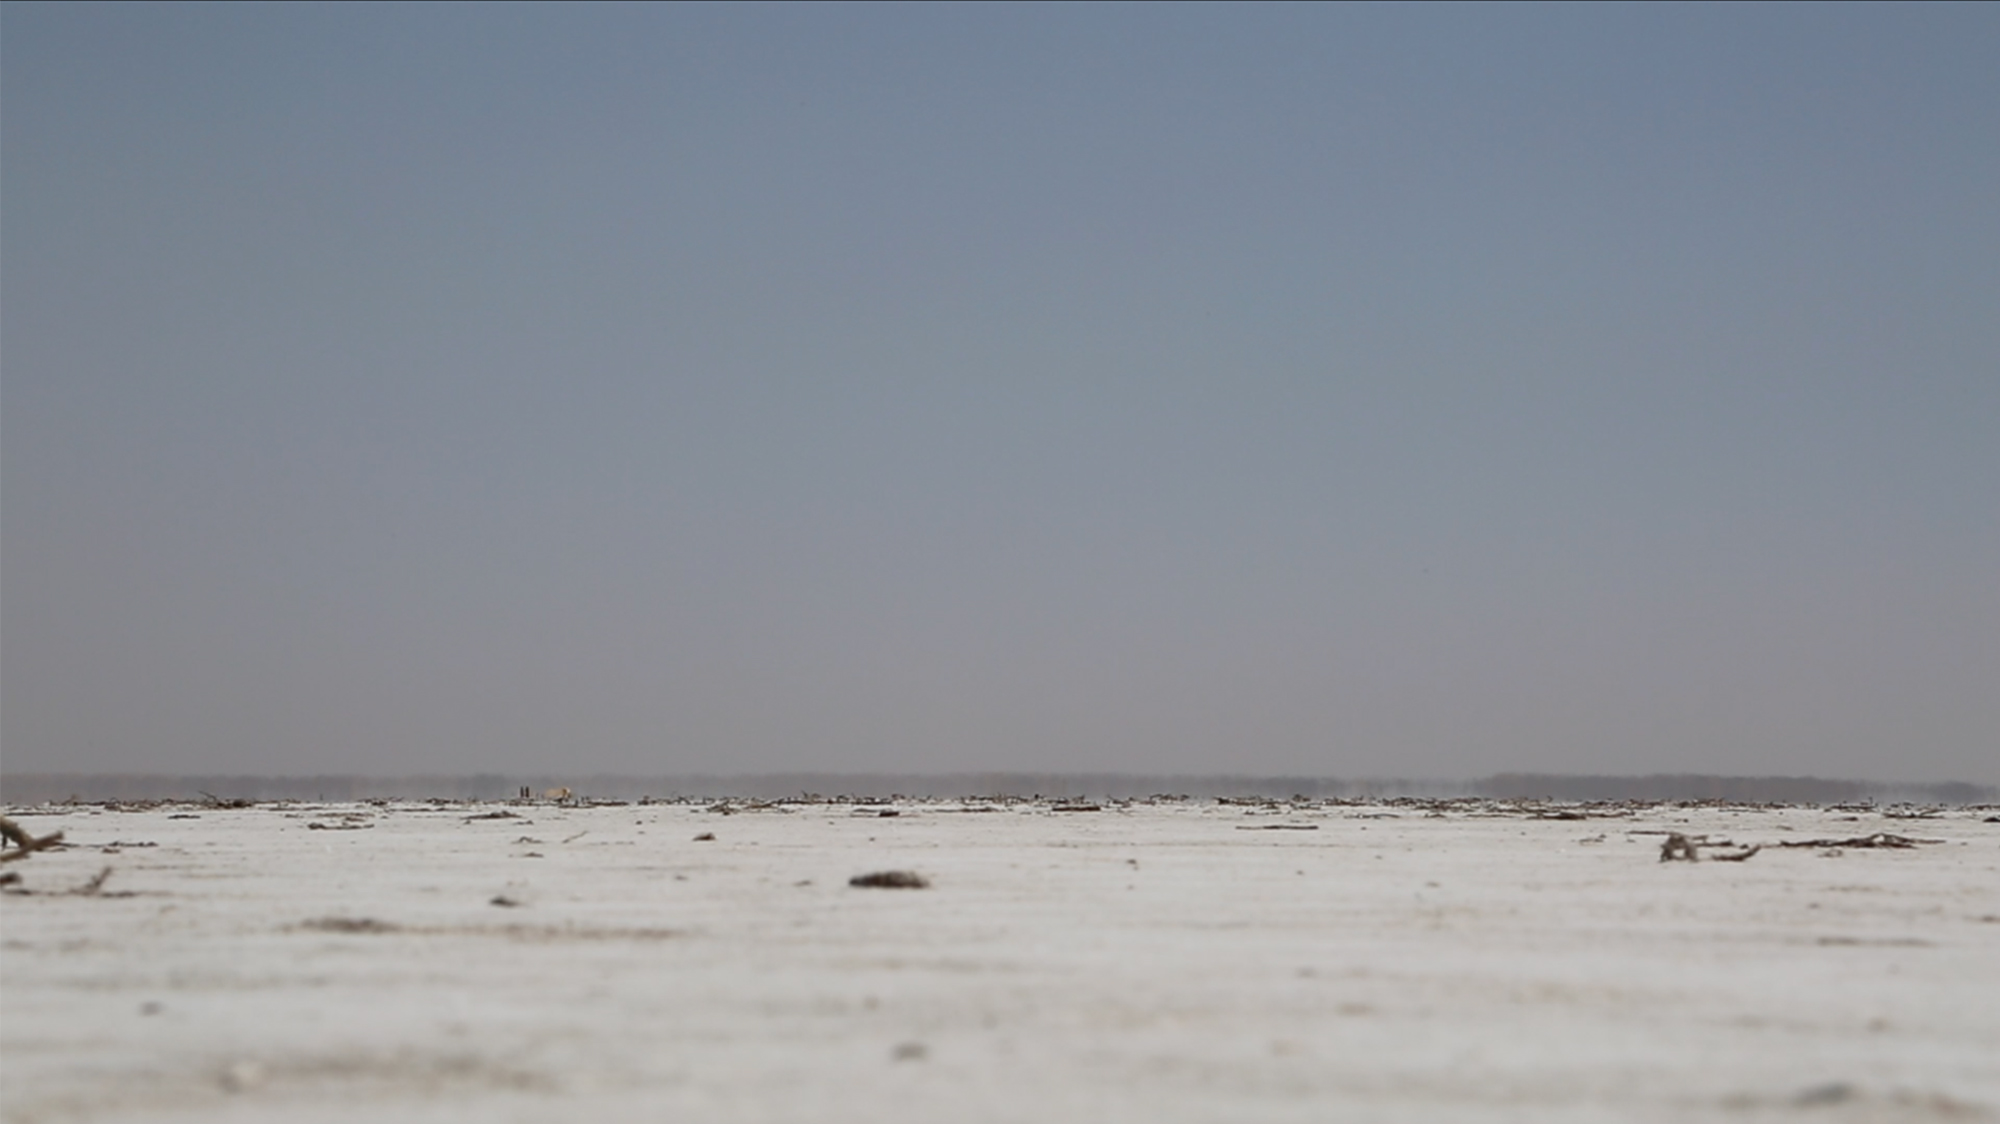 Lowest Point Kati Thandi, Belt Bay, 2014, HD video 1.48' loop